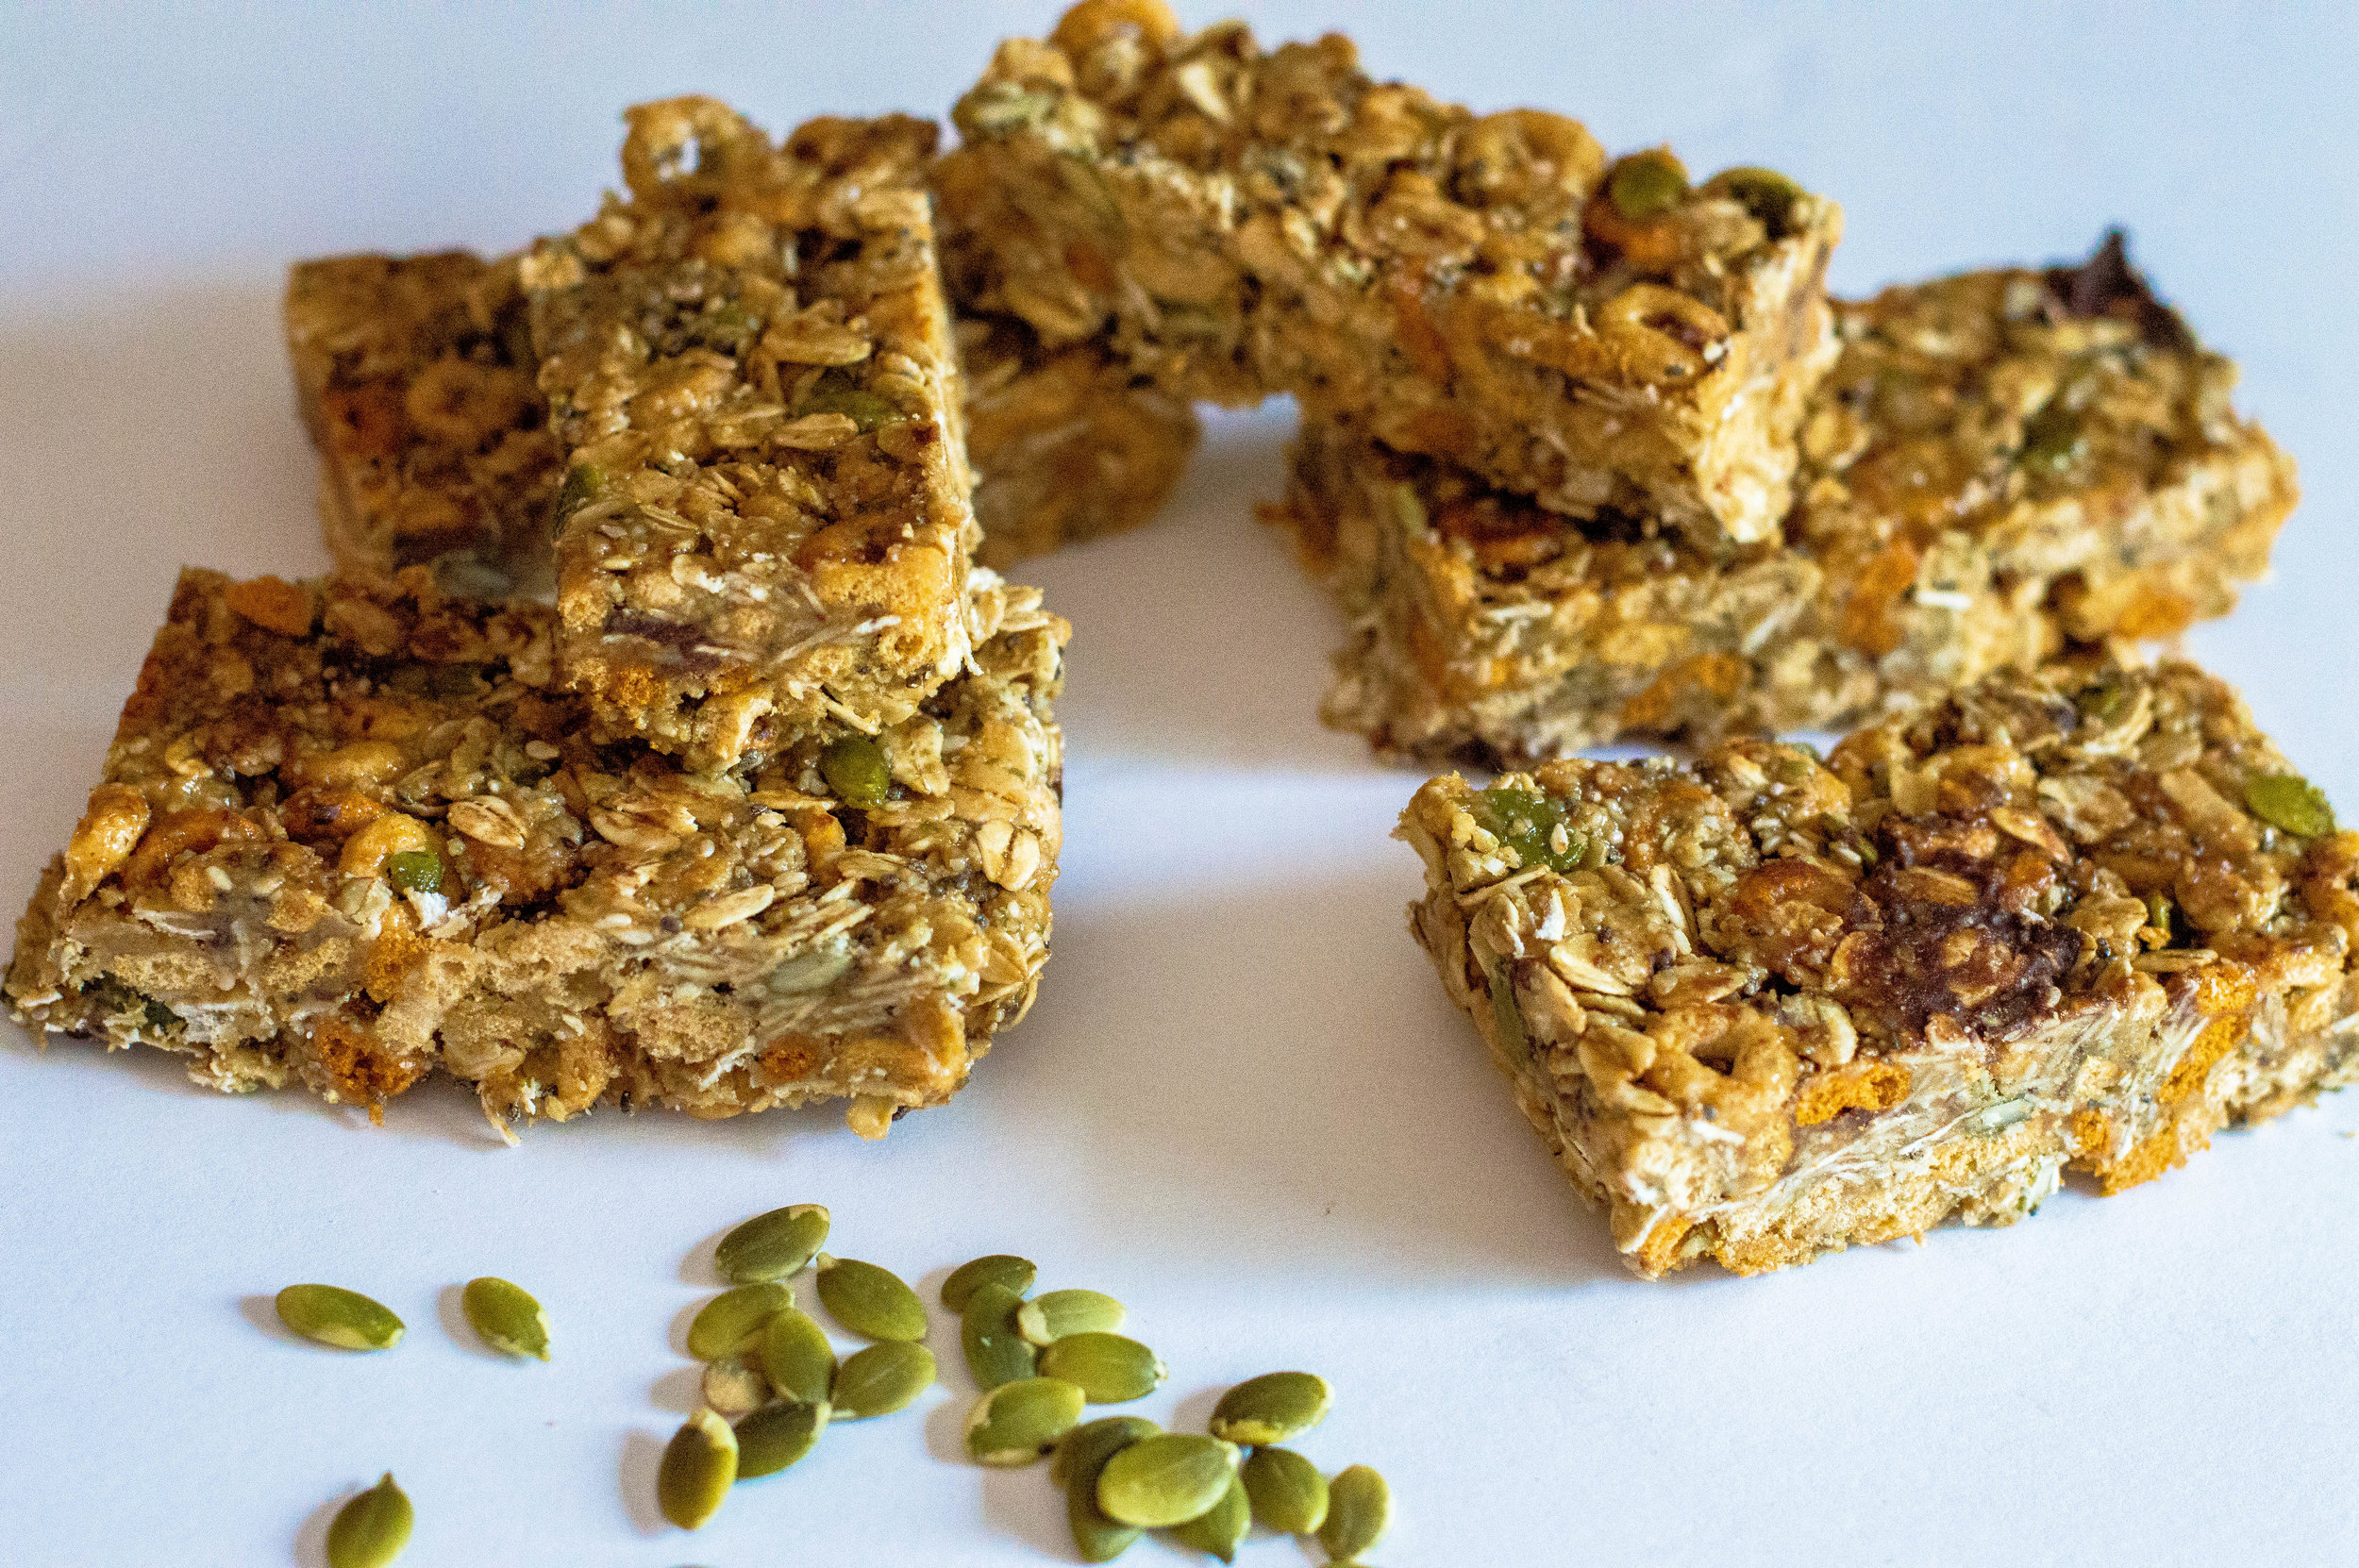 Little green lives -Glo bars- Oh she glows - healthy snacks